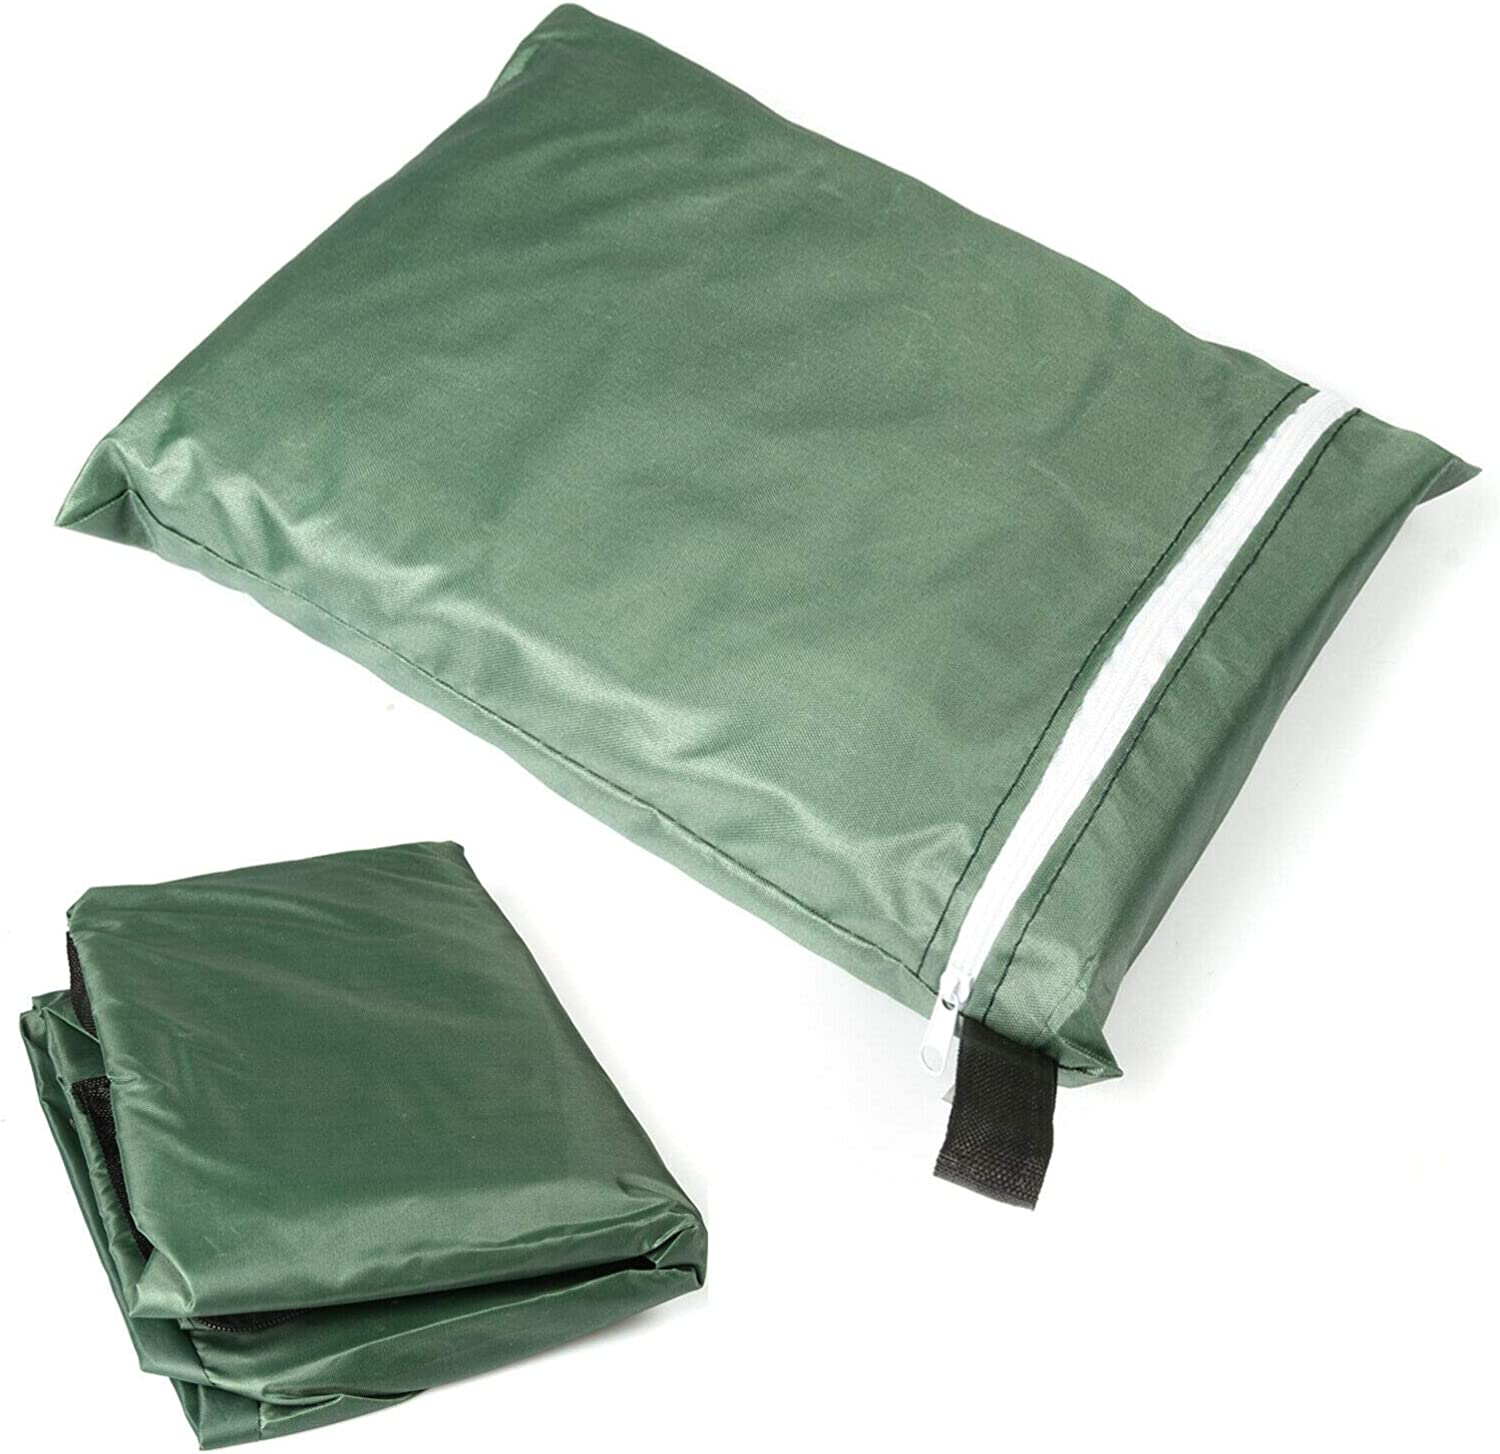 Rectangular Cushion Cover Storage Bag Outdoor Protective Zippered Patio Furniture Cover, Water Resistant, (Volume 670L)